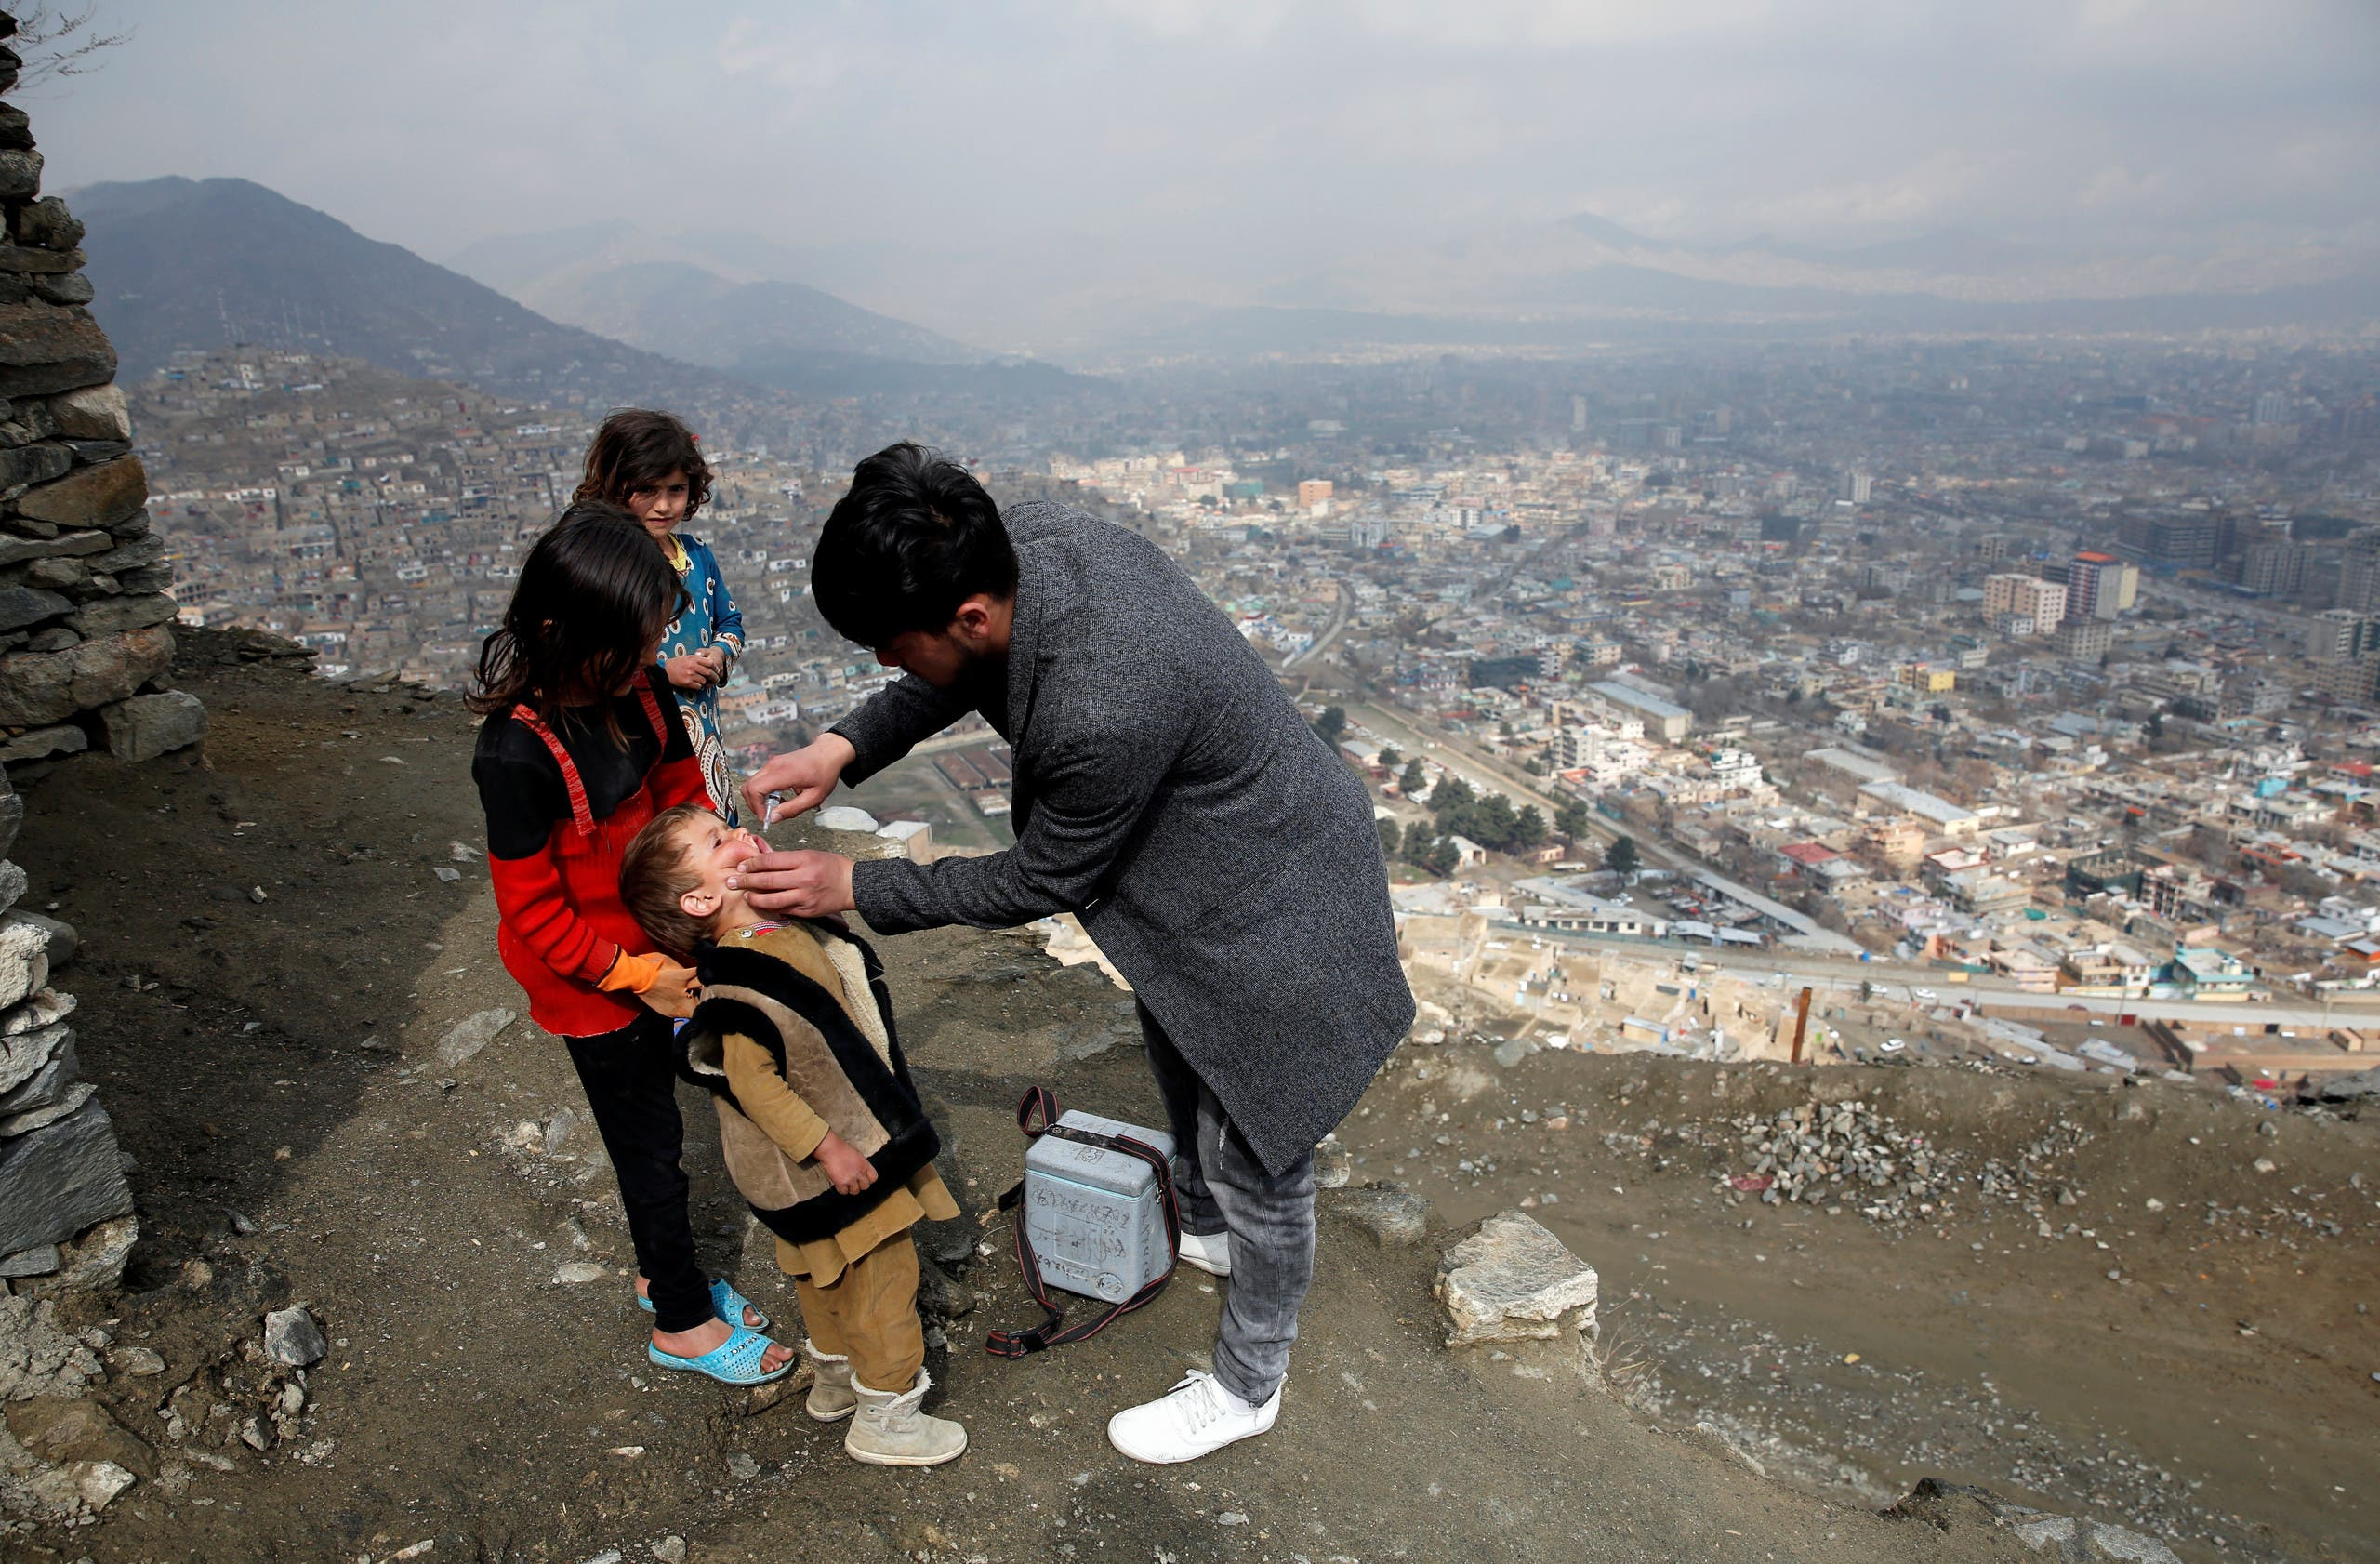 A boy receives polio vaccination drops during an anti-polio campaign in Kabul, Afghanistan March 14, 2018. (Reuters)